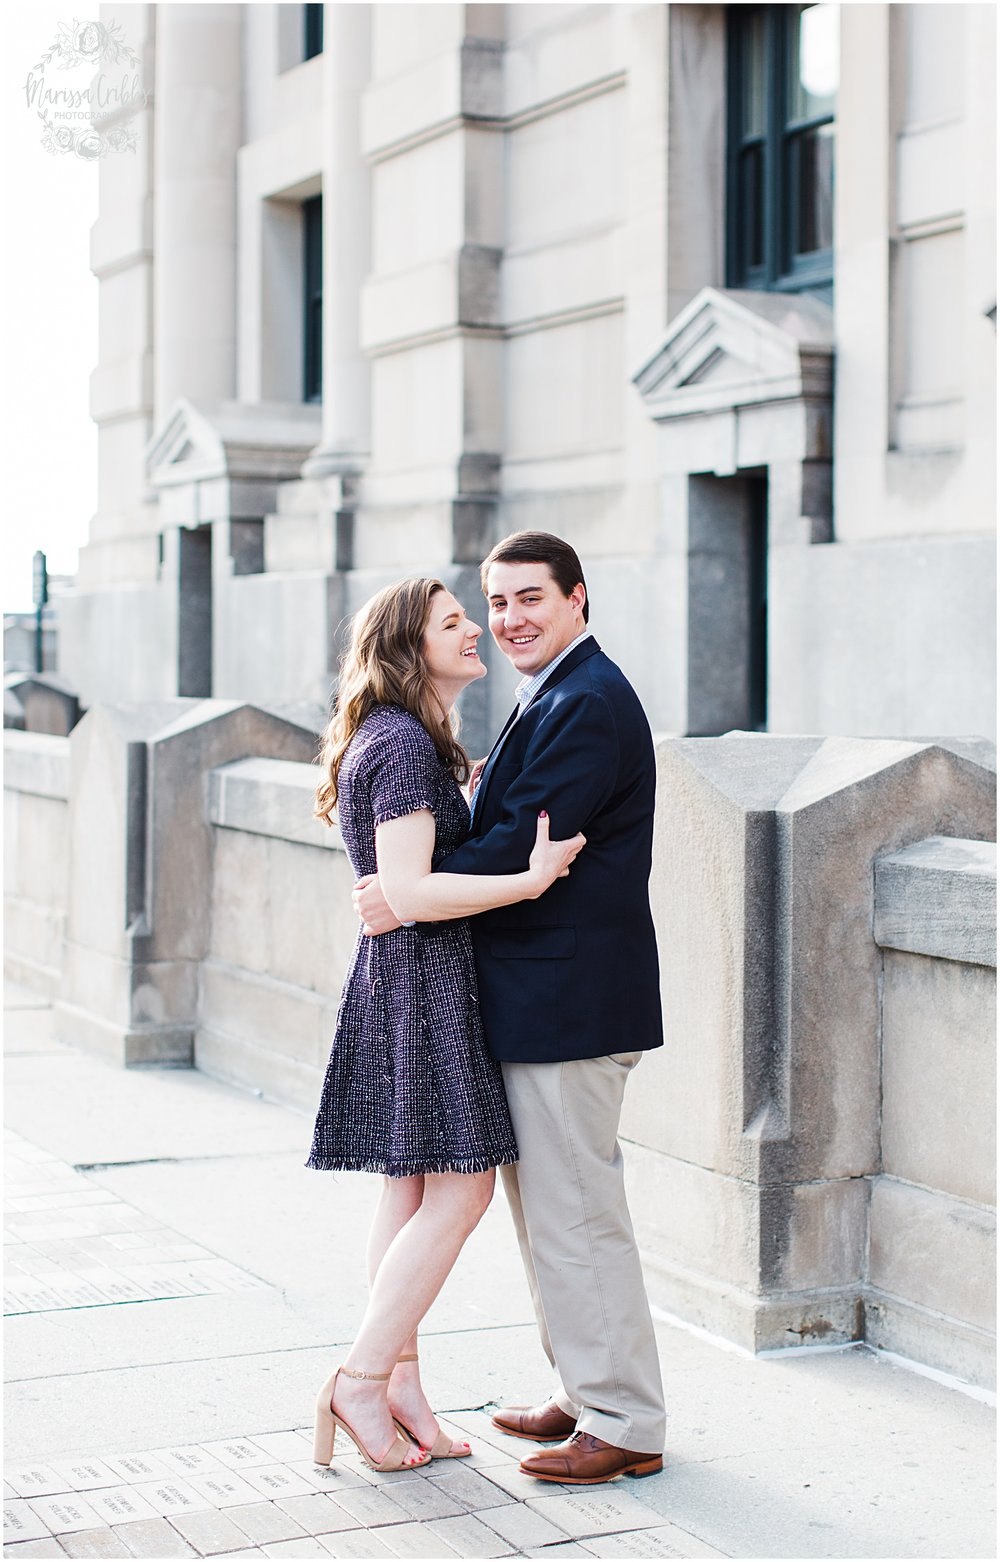 CAROLINE & JOE ENGAGEMENT FINAL | MARISSA CRIBBS PHOTOGRAPHY_4188.jpg